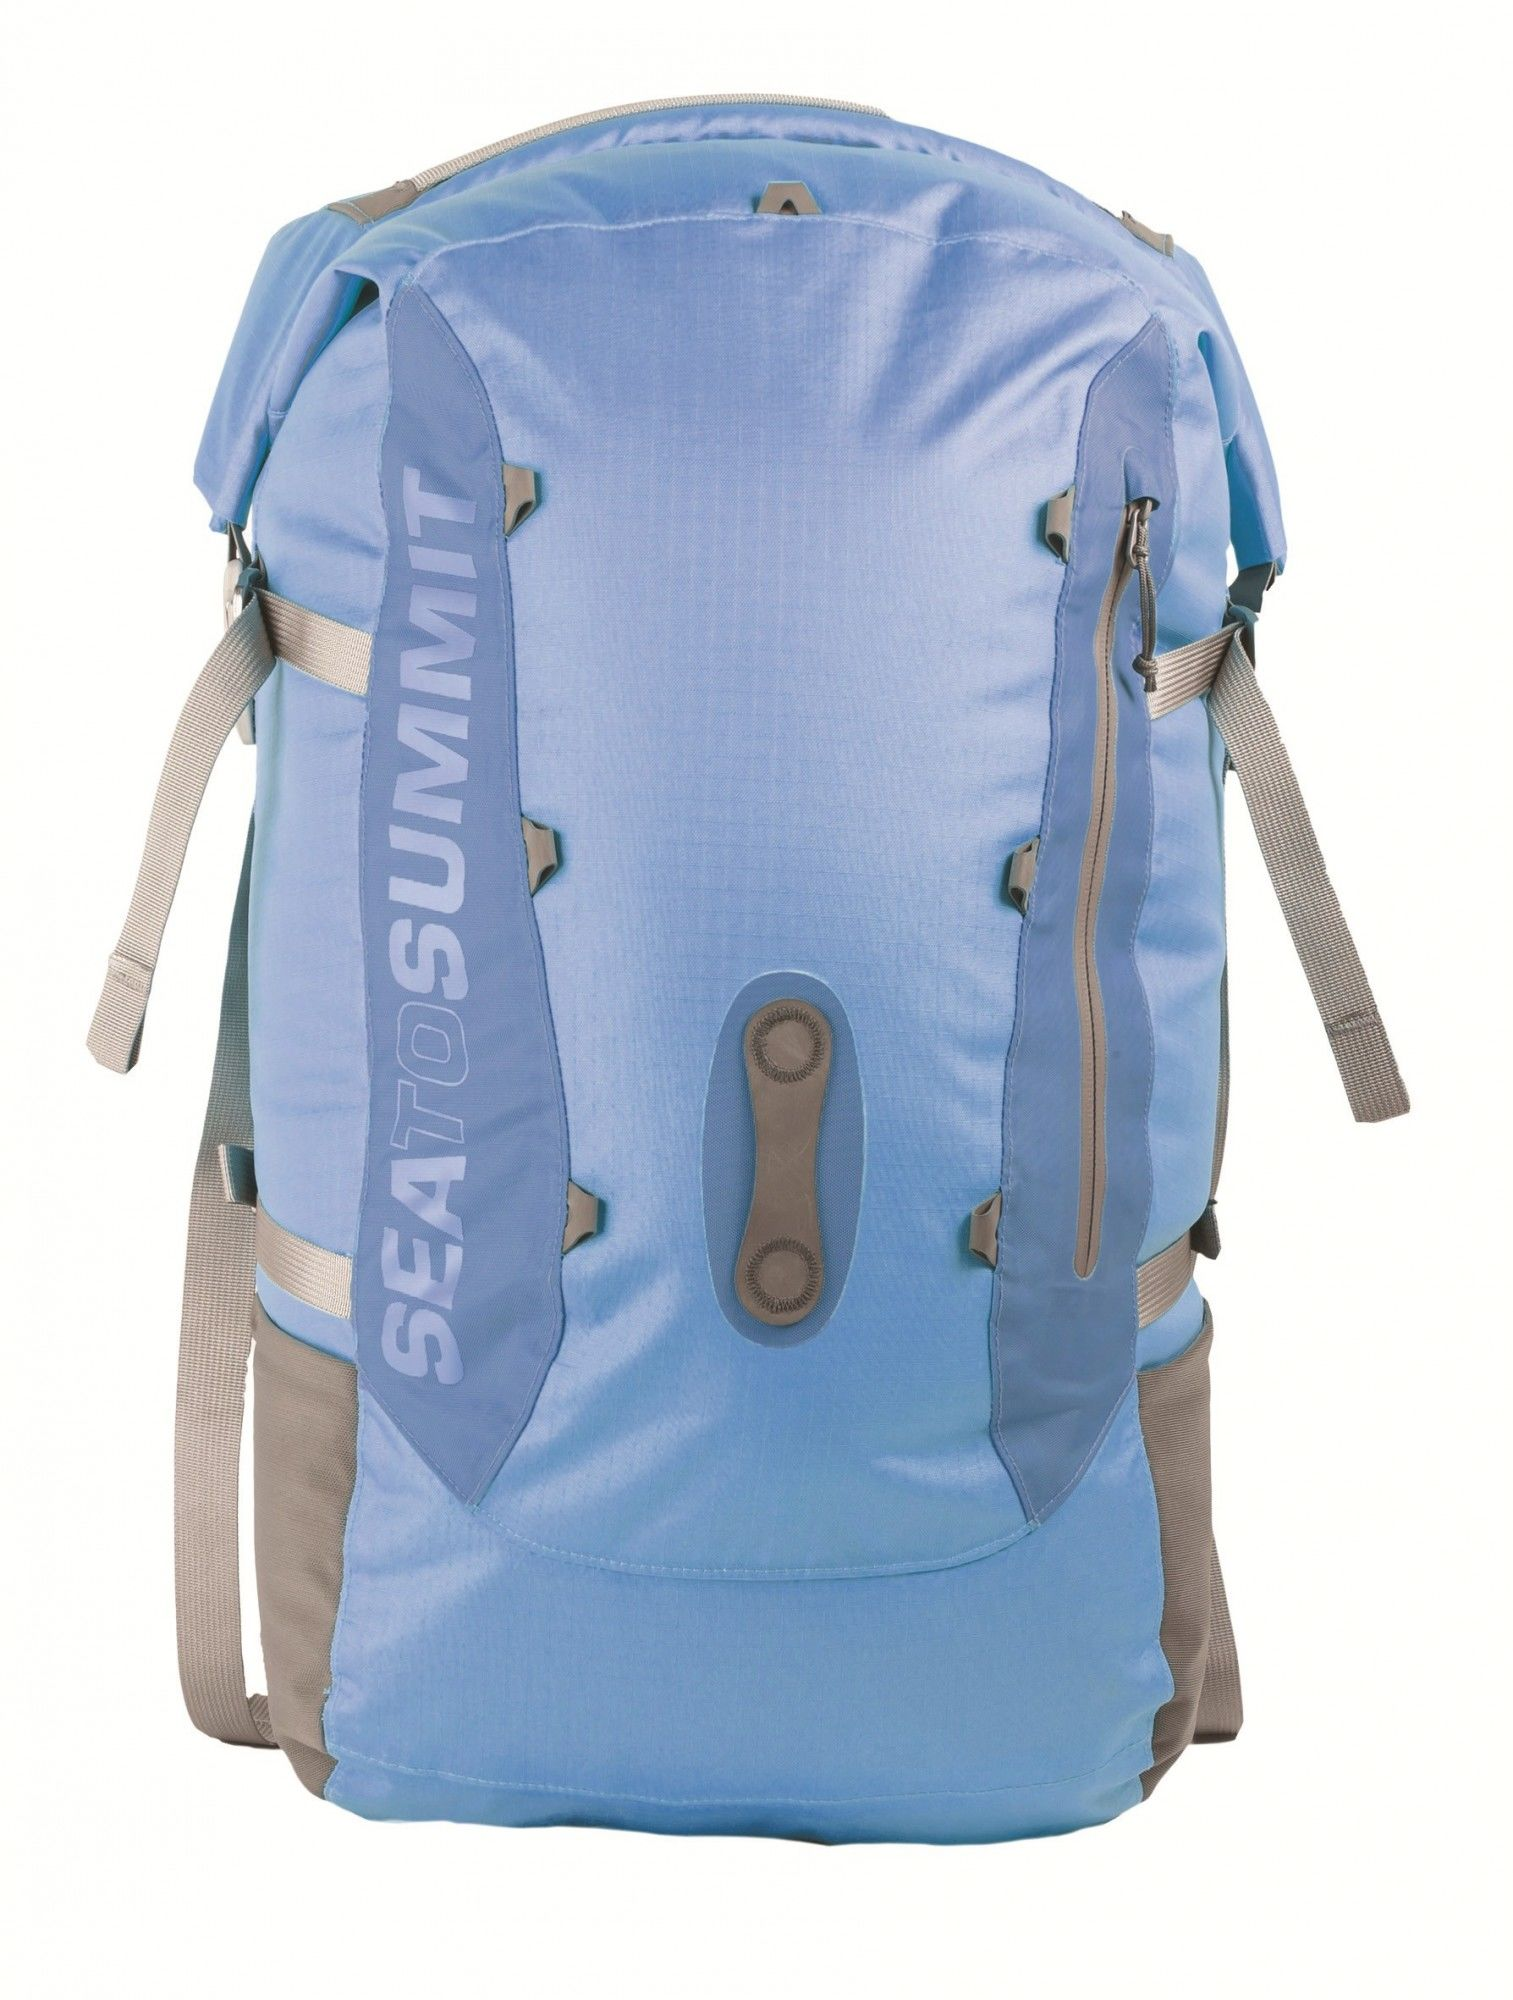 Sea to Summit Flow Drypack 35L Blau, Alpin-& Trekkingrucksack, 35l